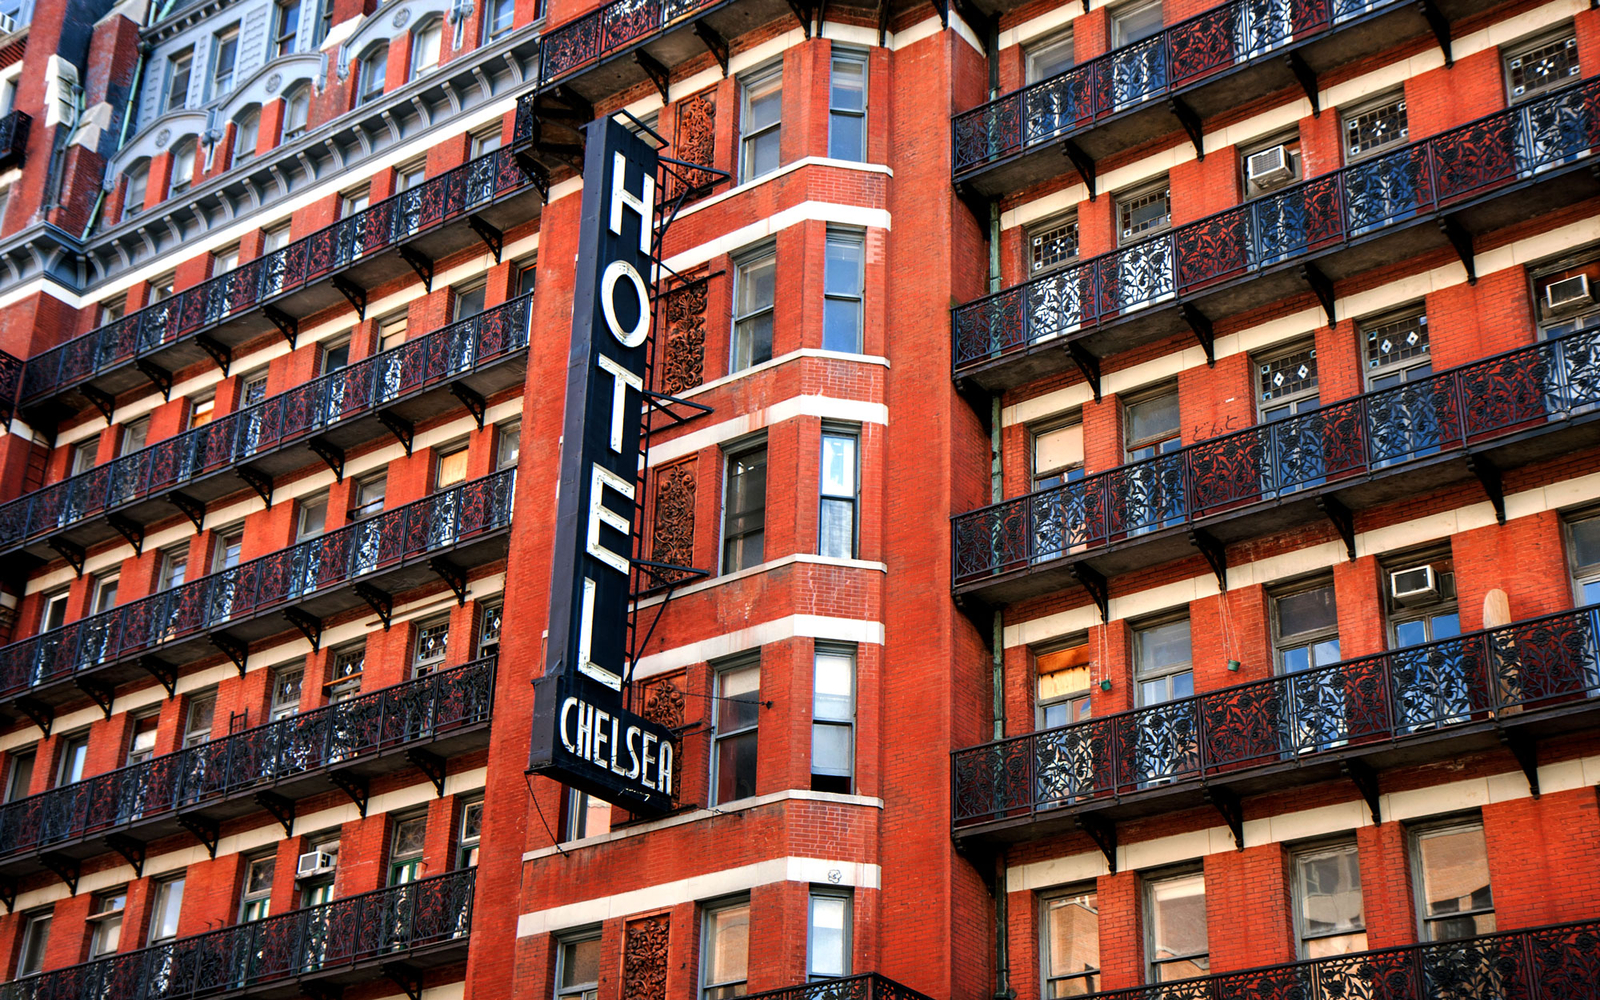 Chelsea Hotel, New York City